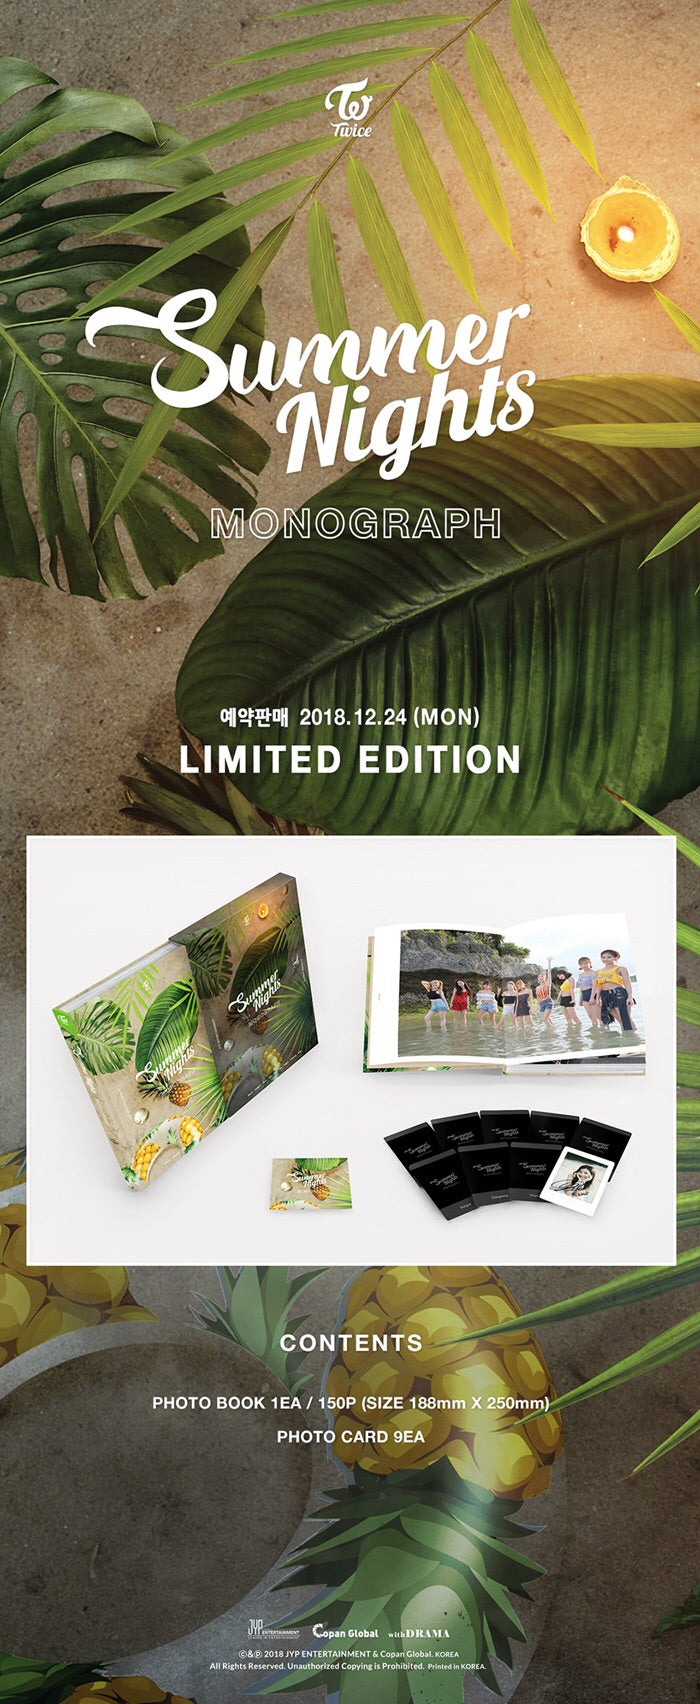 TWICE - Twice Monograph (Summer Nights) - Limited Edition - Pre-Order